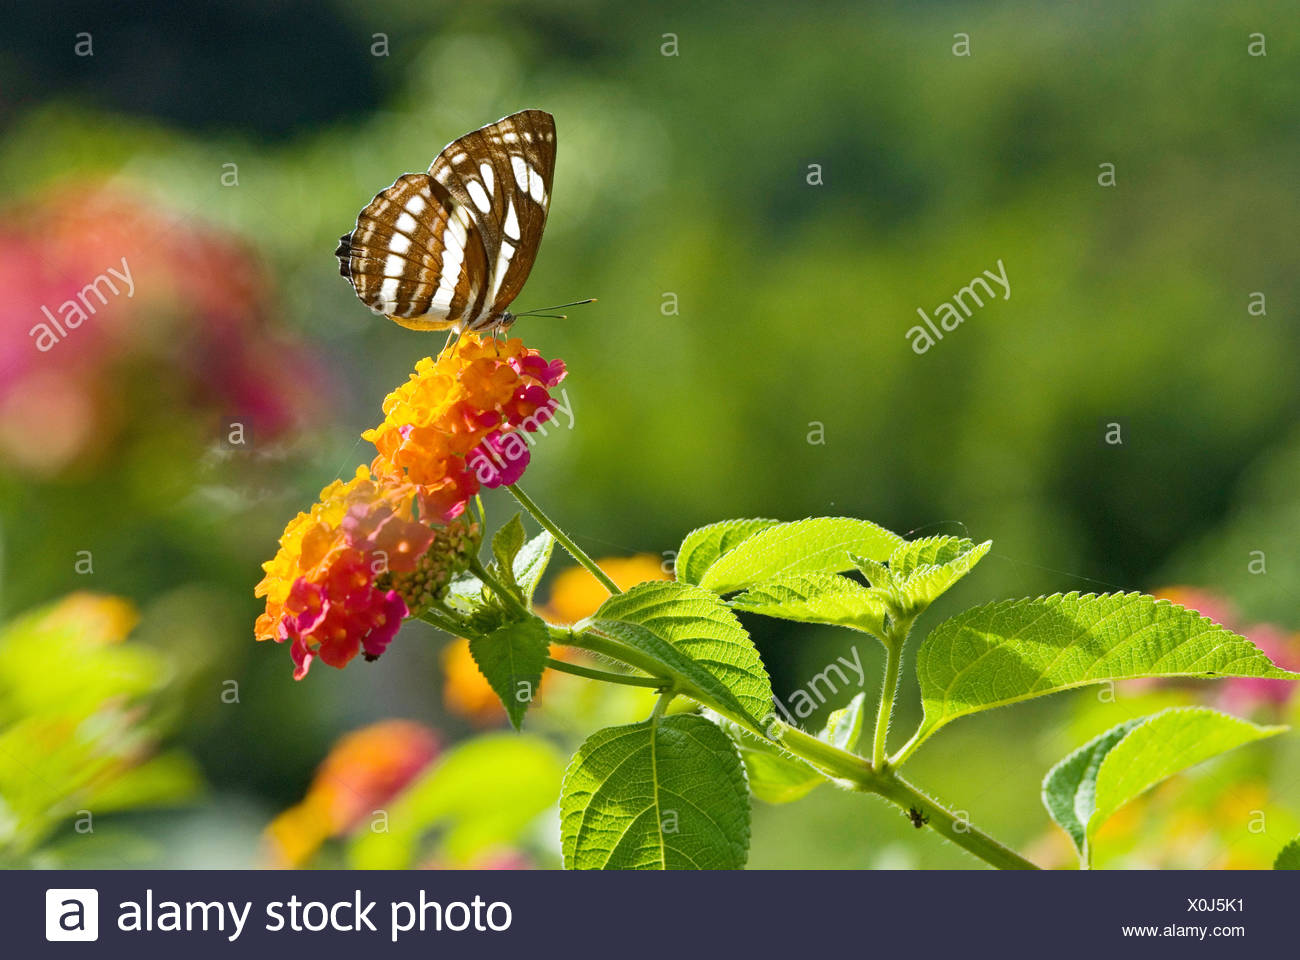 Black and White Brush-footed butterfly (Neptis hylas) on Lantana (Lantana camara), Asia - Stock Image